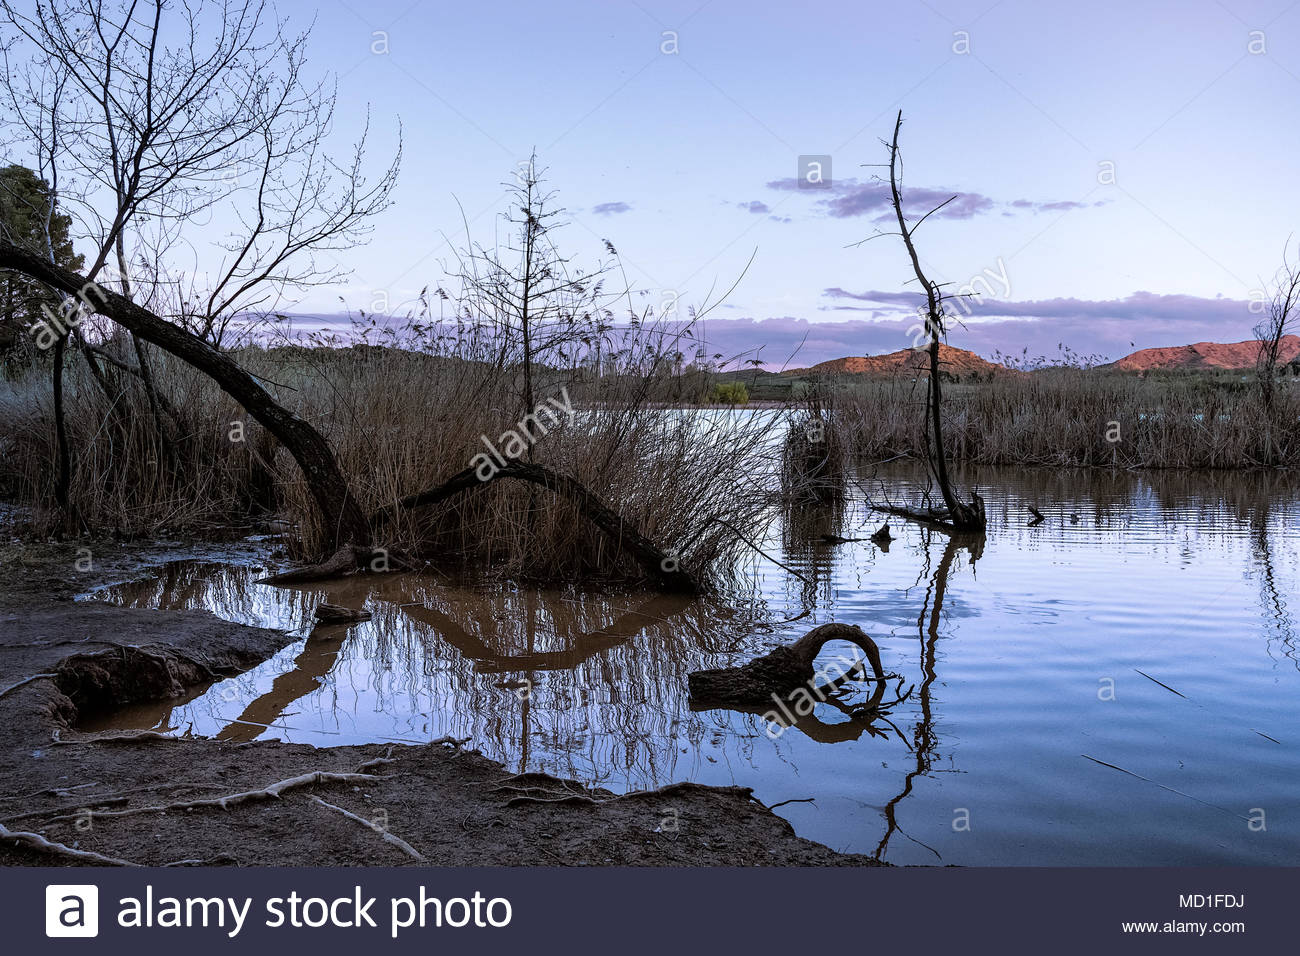 surreal landscape with broken and fallen trees in a lake at magenta dream sunset - Stock Image